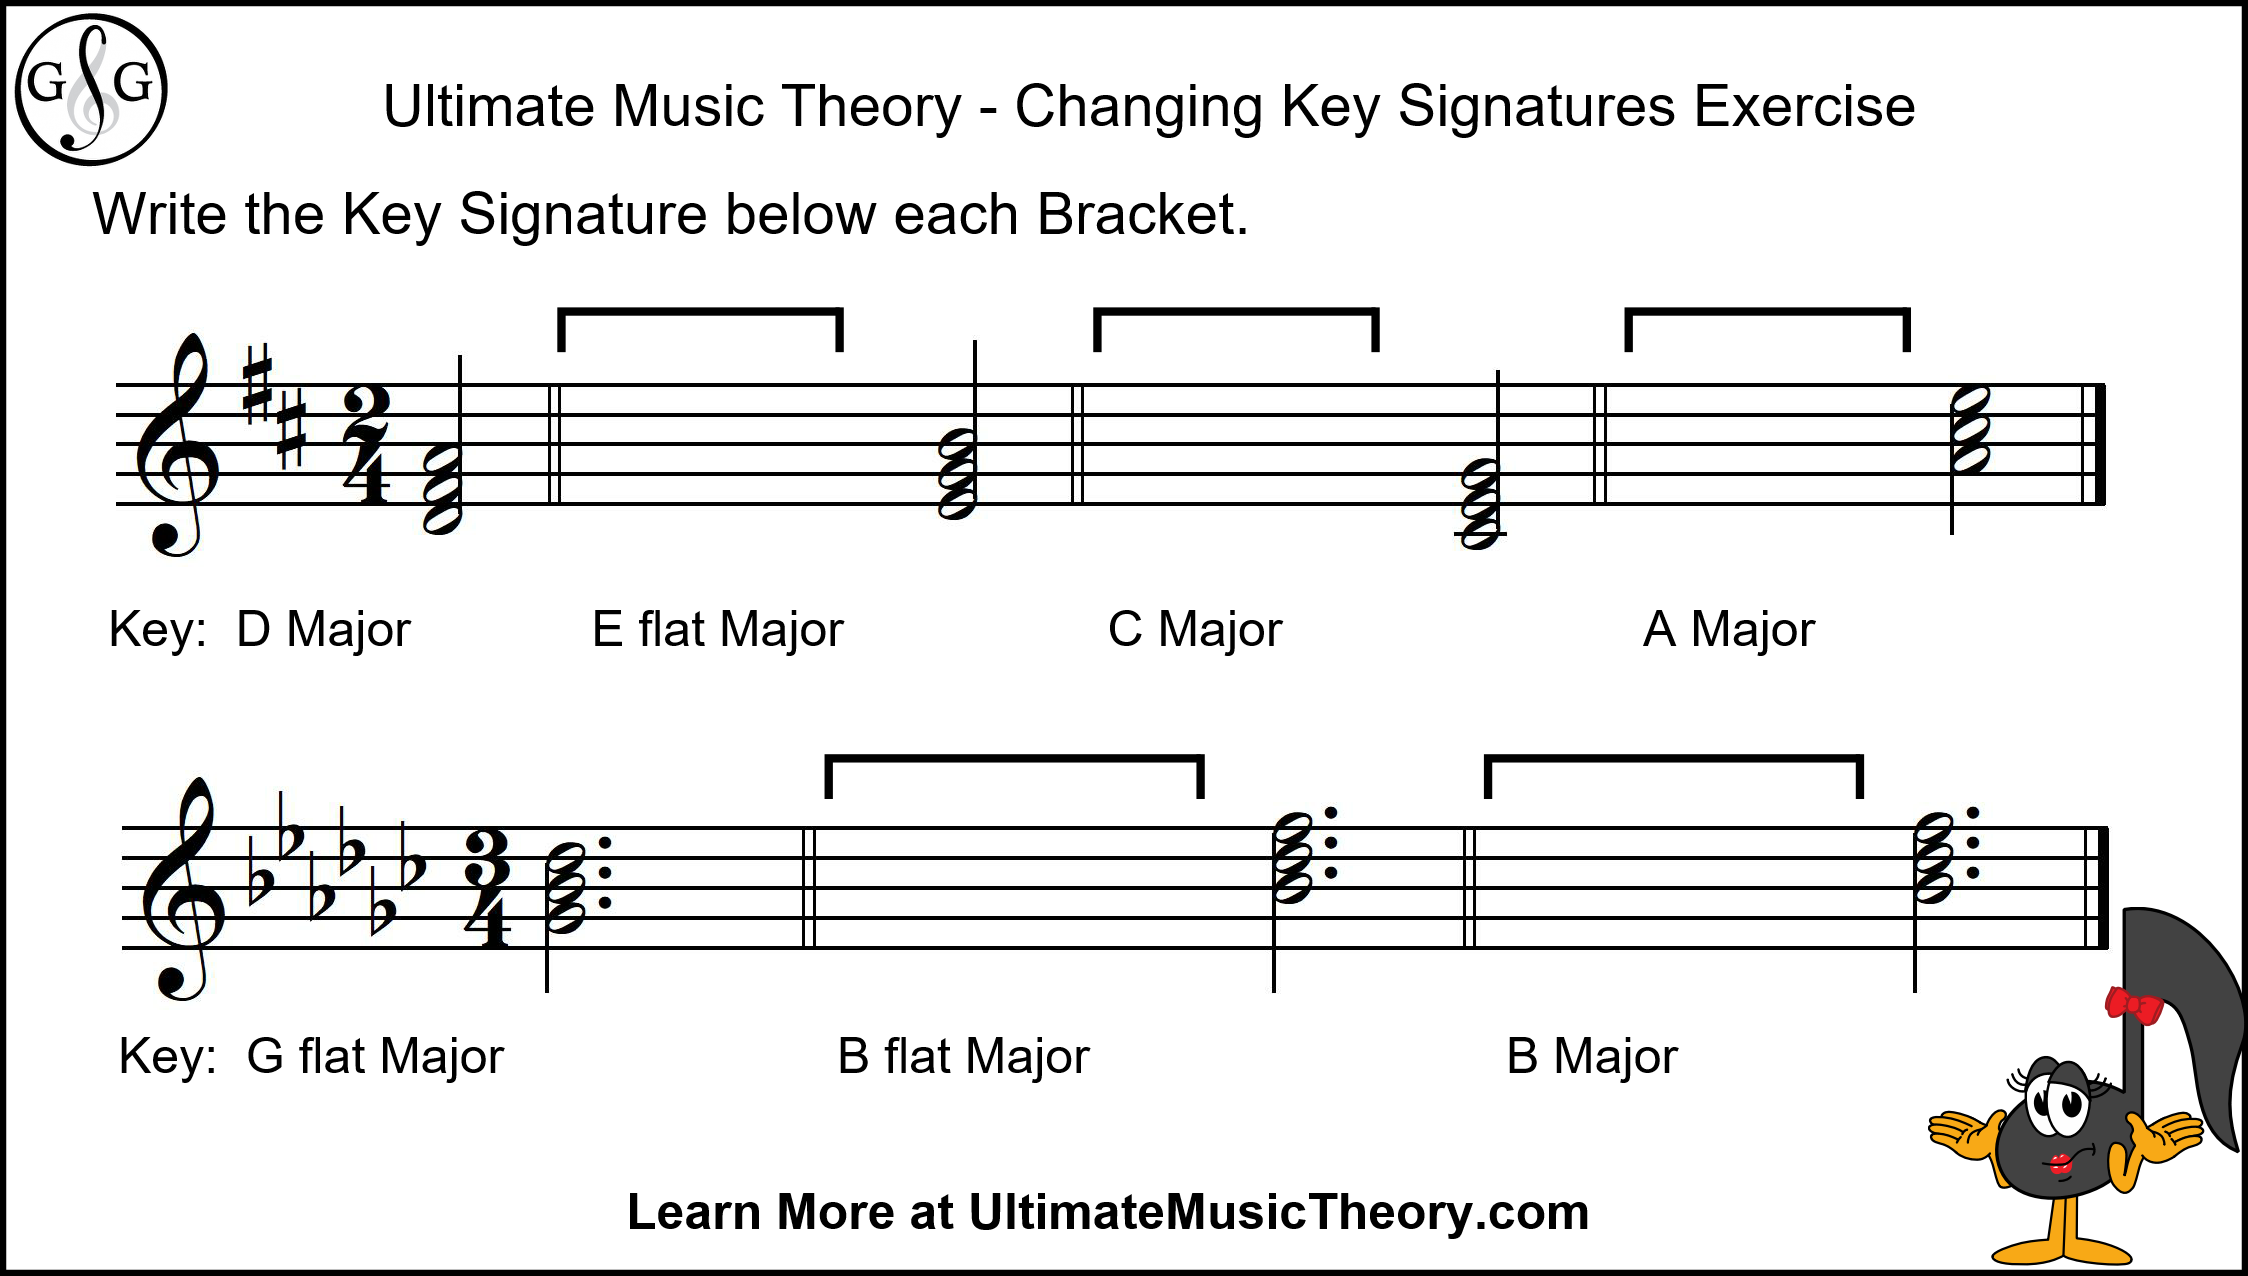 Ultimate Music Theory Changing Key Signatures Exercise